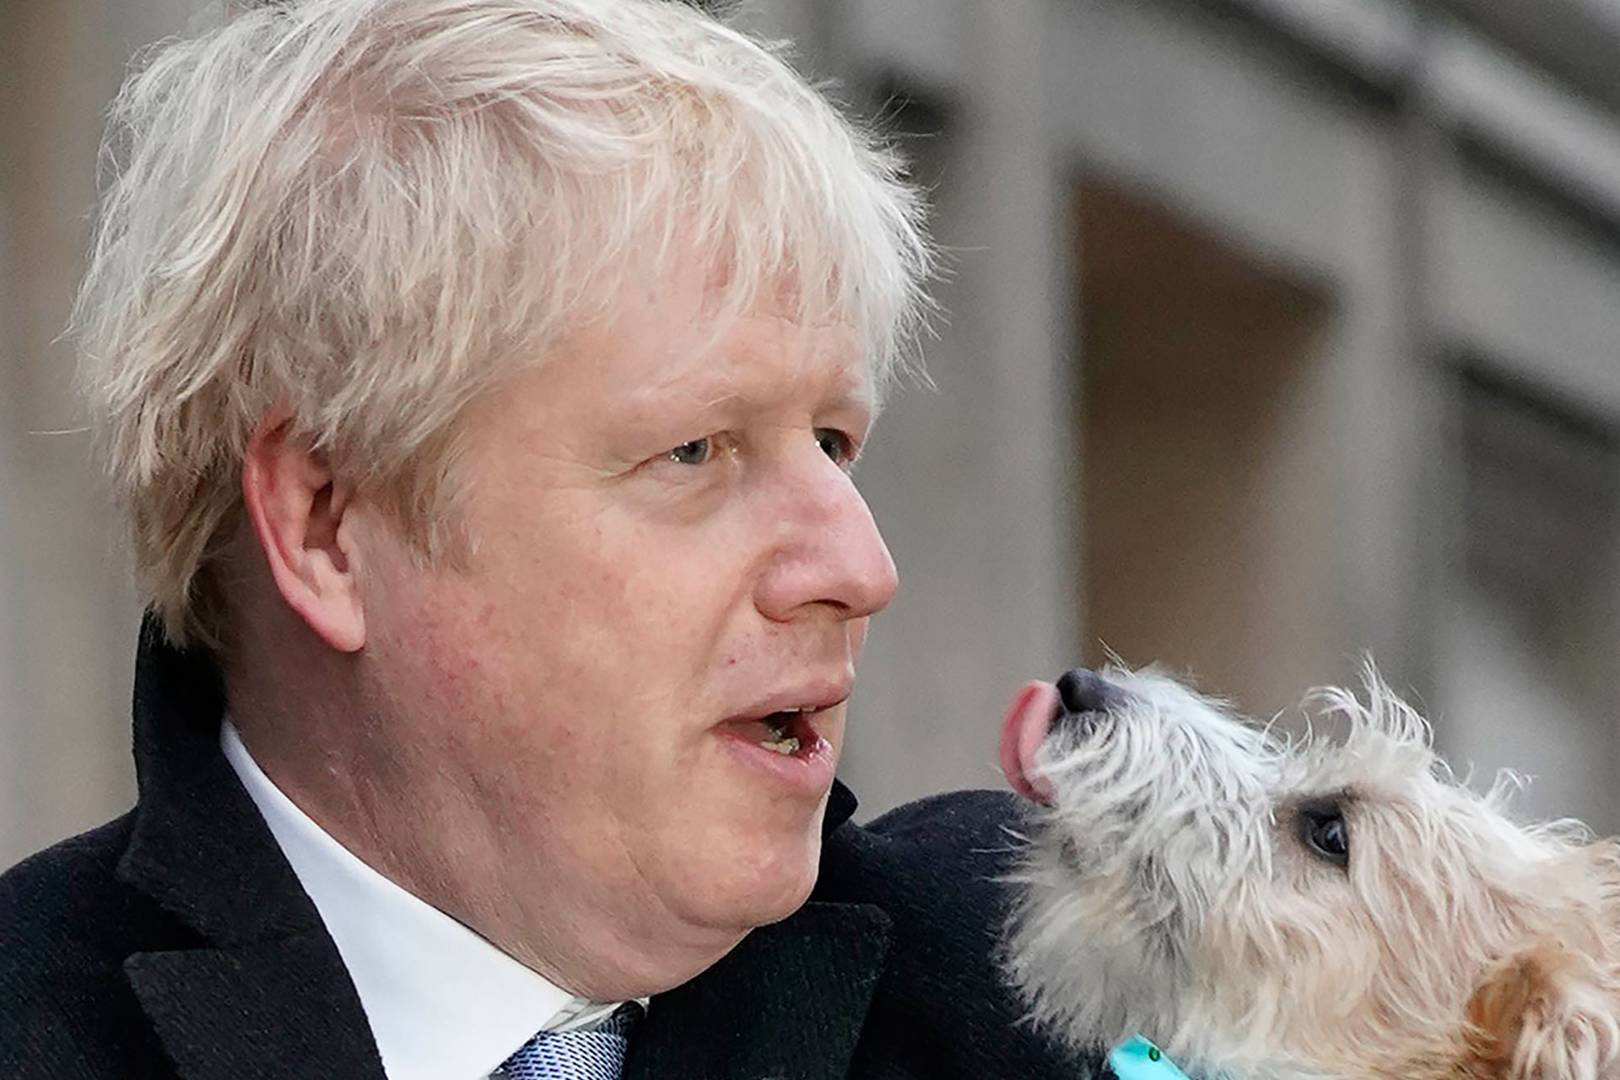 pm-reveals-the-amorous-inclinations-of-dilyn-the-no-10-dog